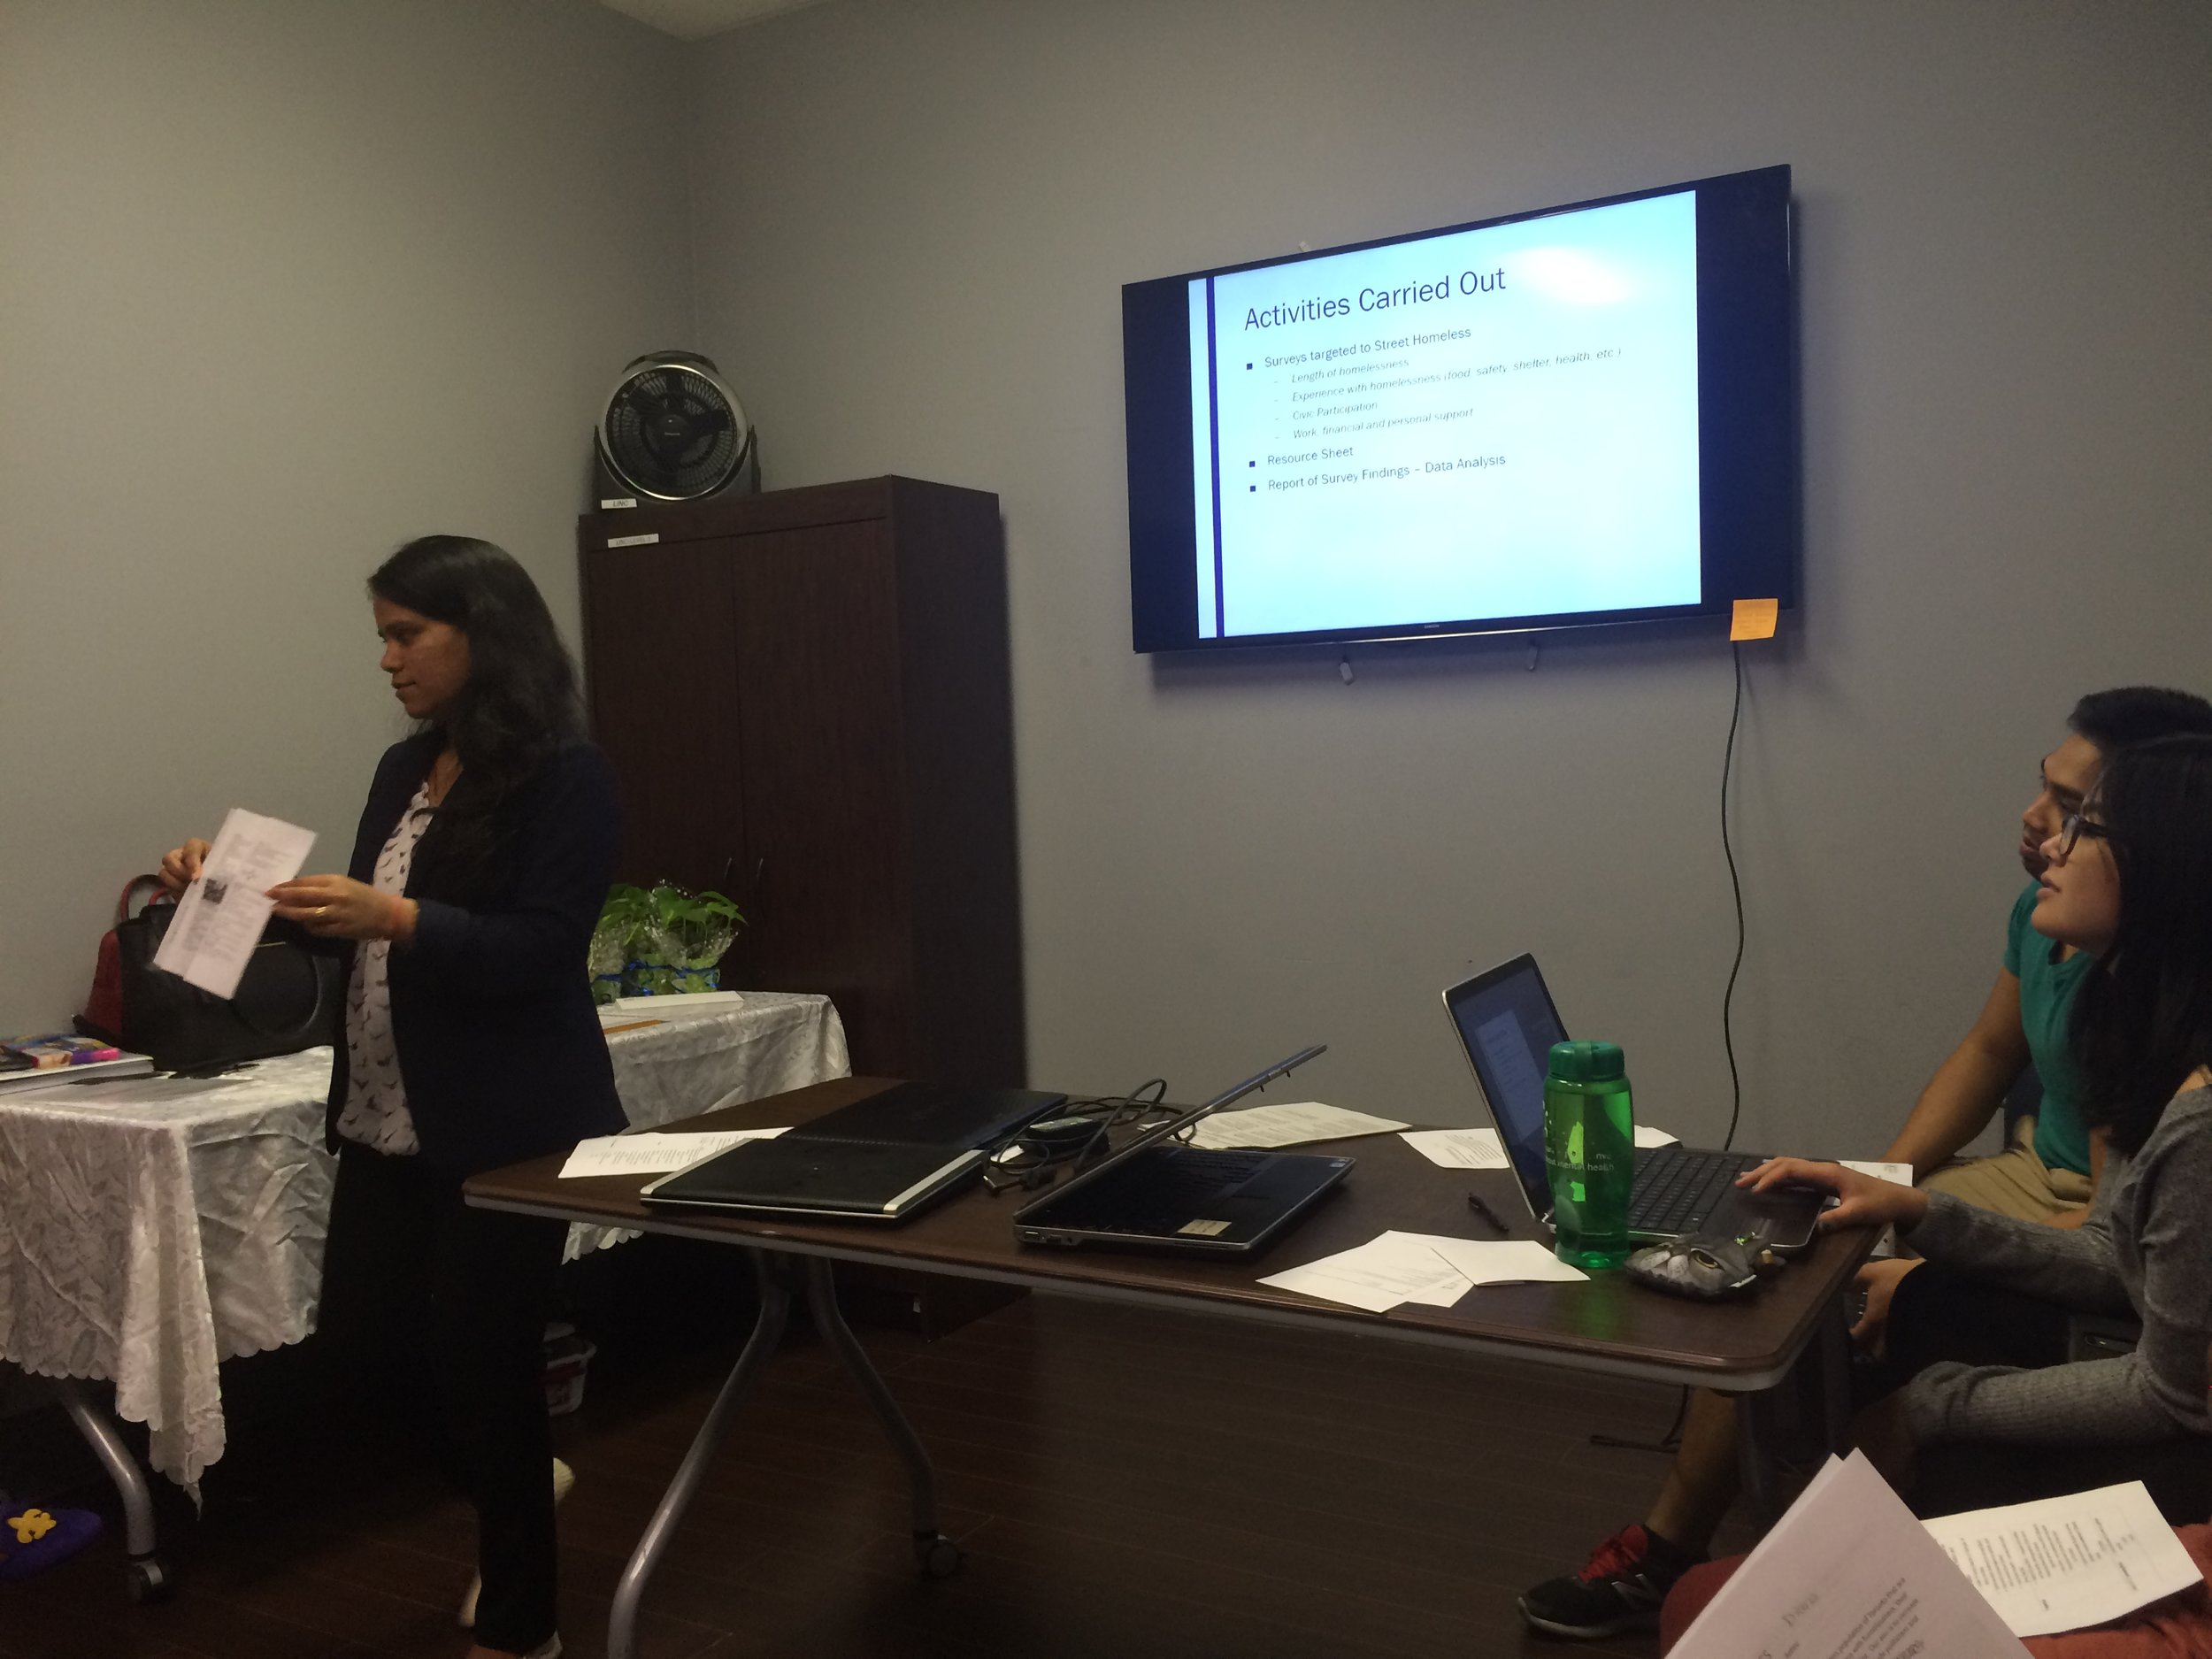 Archana (left) during a presentation